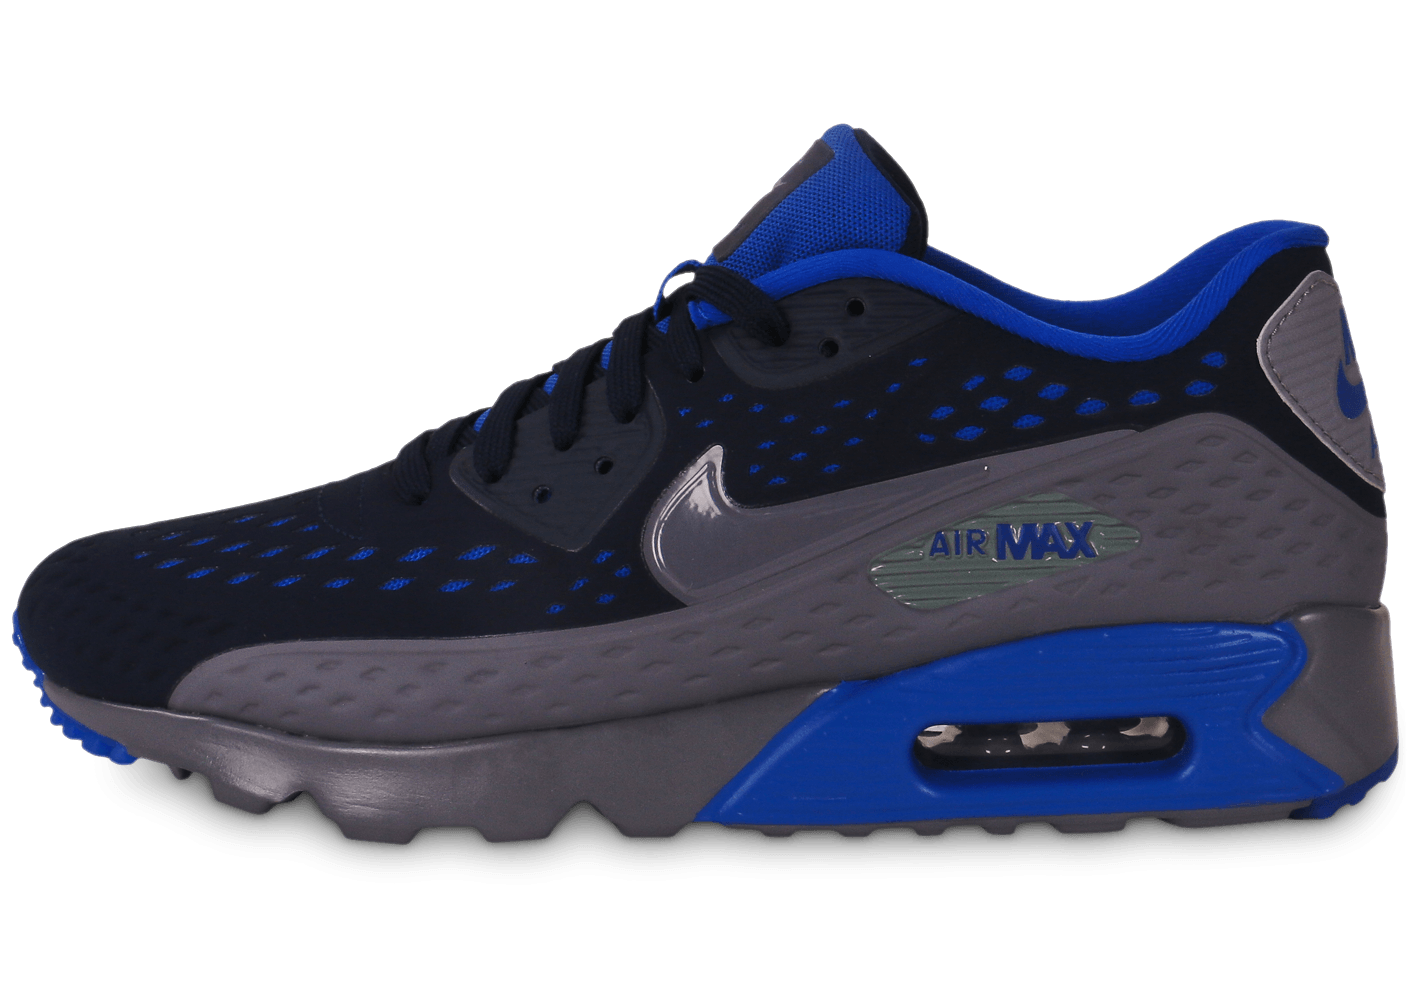 low priced 2e483 a82b8 Nike Air Max 90 ultra Breathe bleu et gris - Chaussures Baskets homme -  Chausport